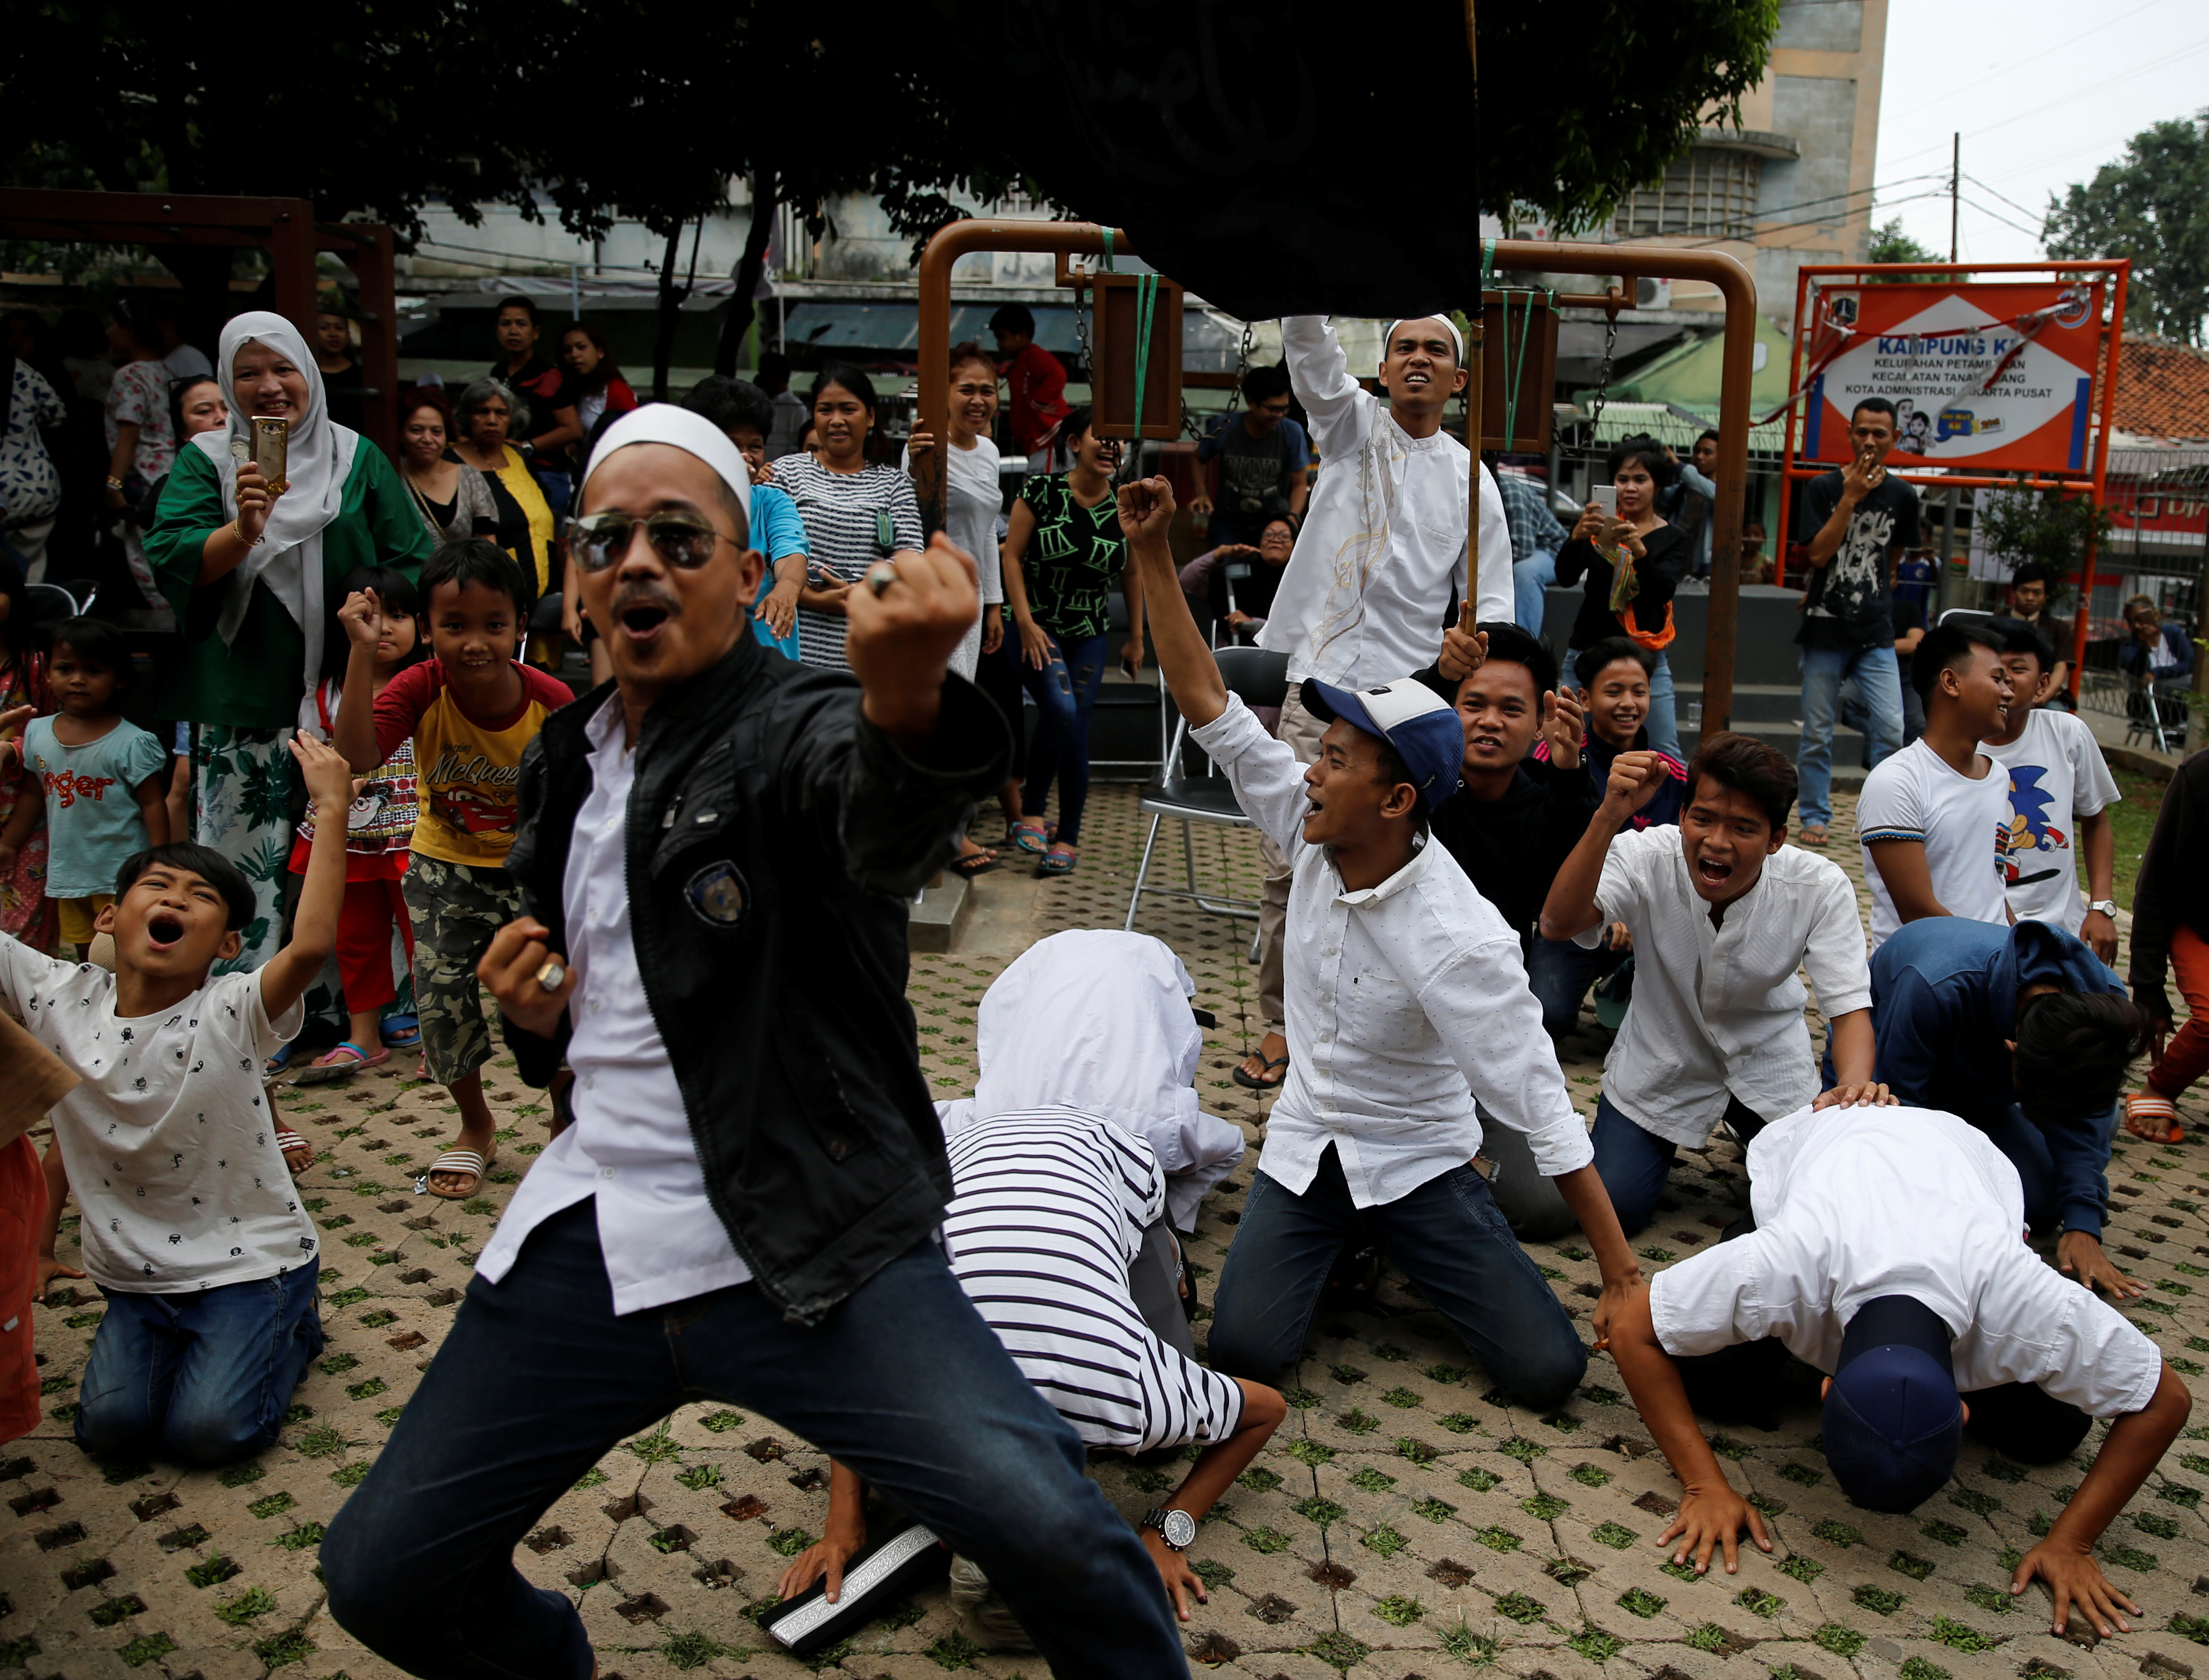 Supporters of Anies Baswedan, at a polling station in Jakarta, on April 19, 2017, react as they hear that he leads the vote count in an election to become the city's governor